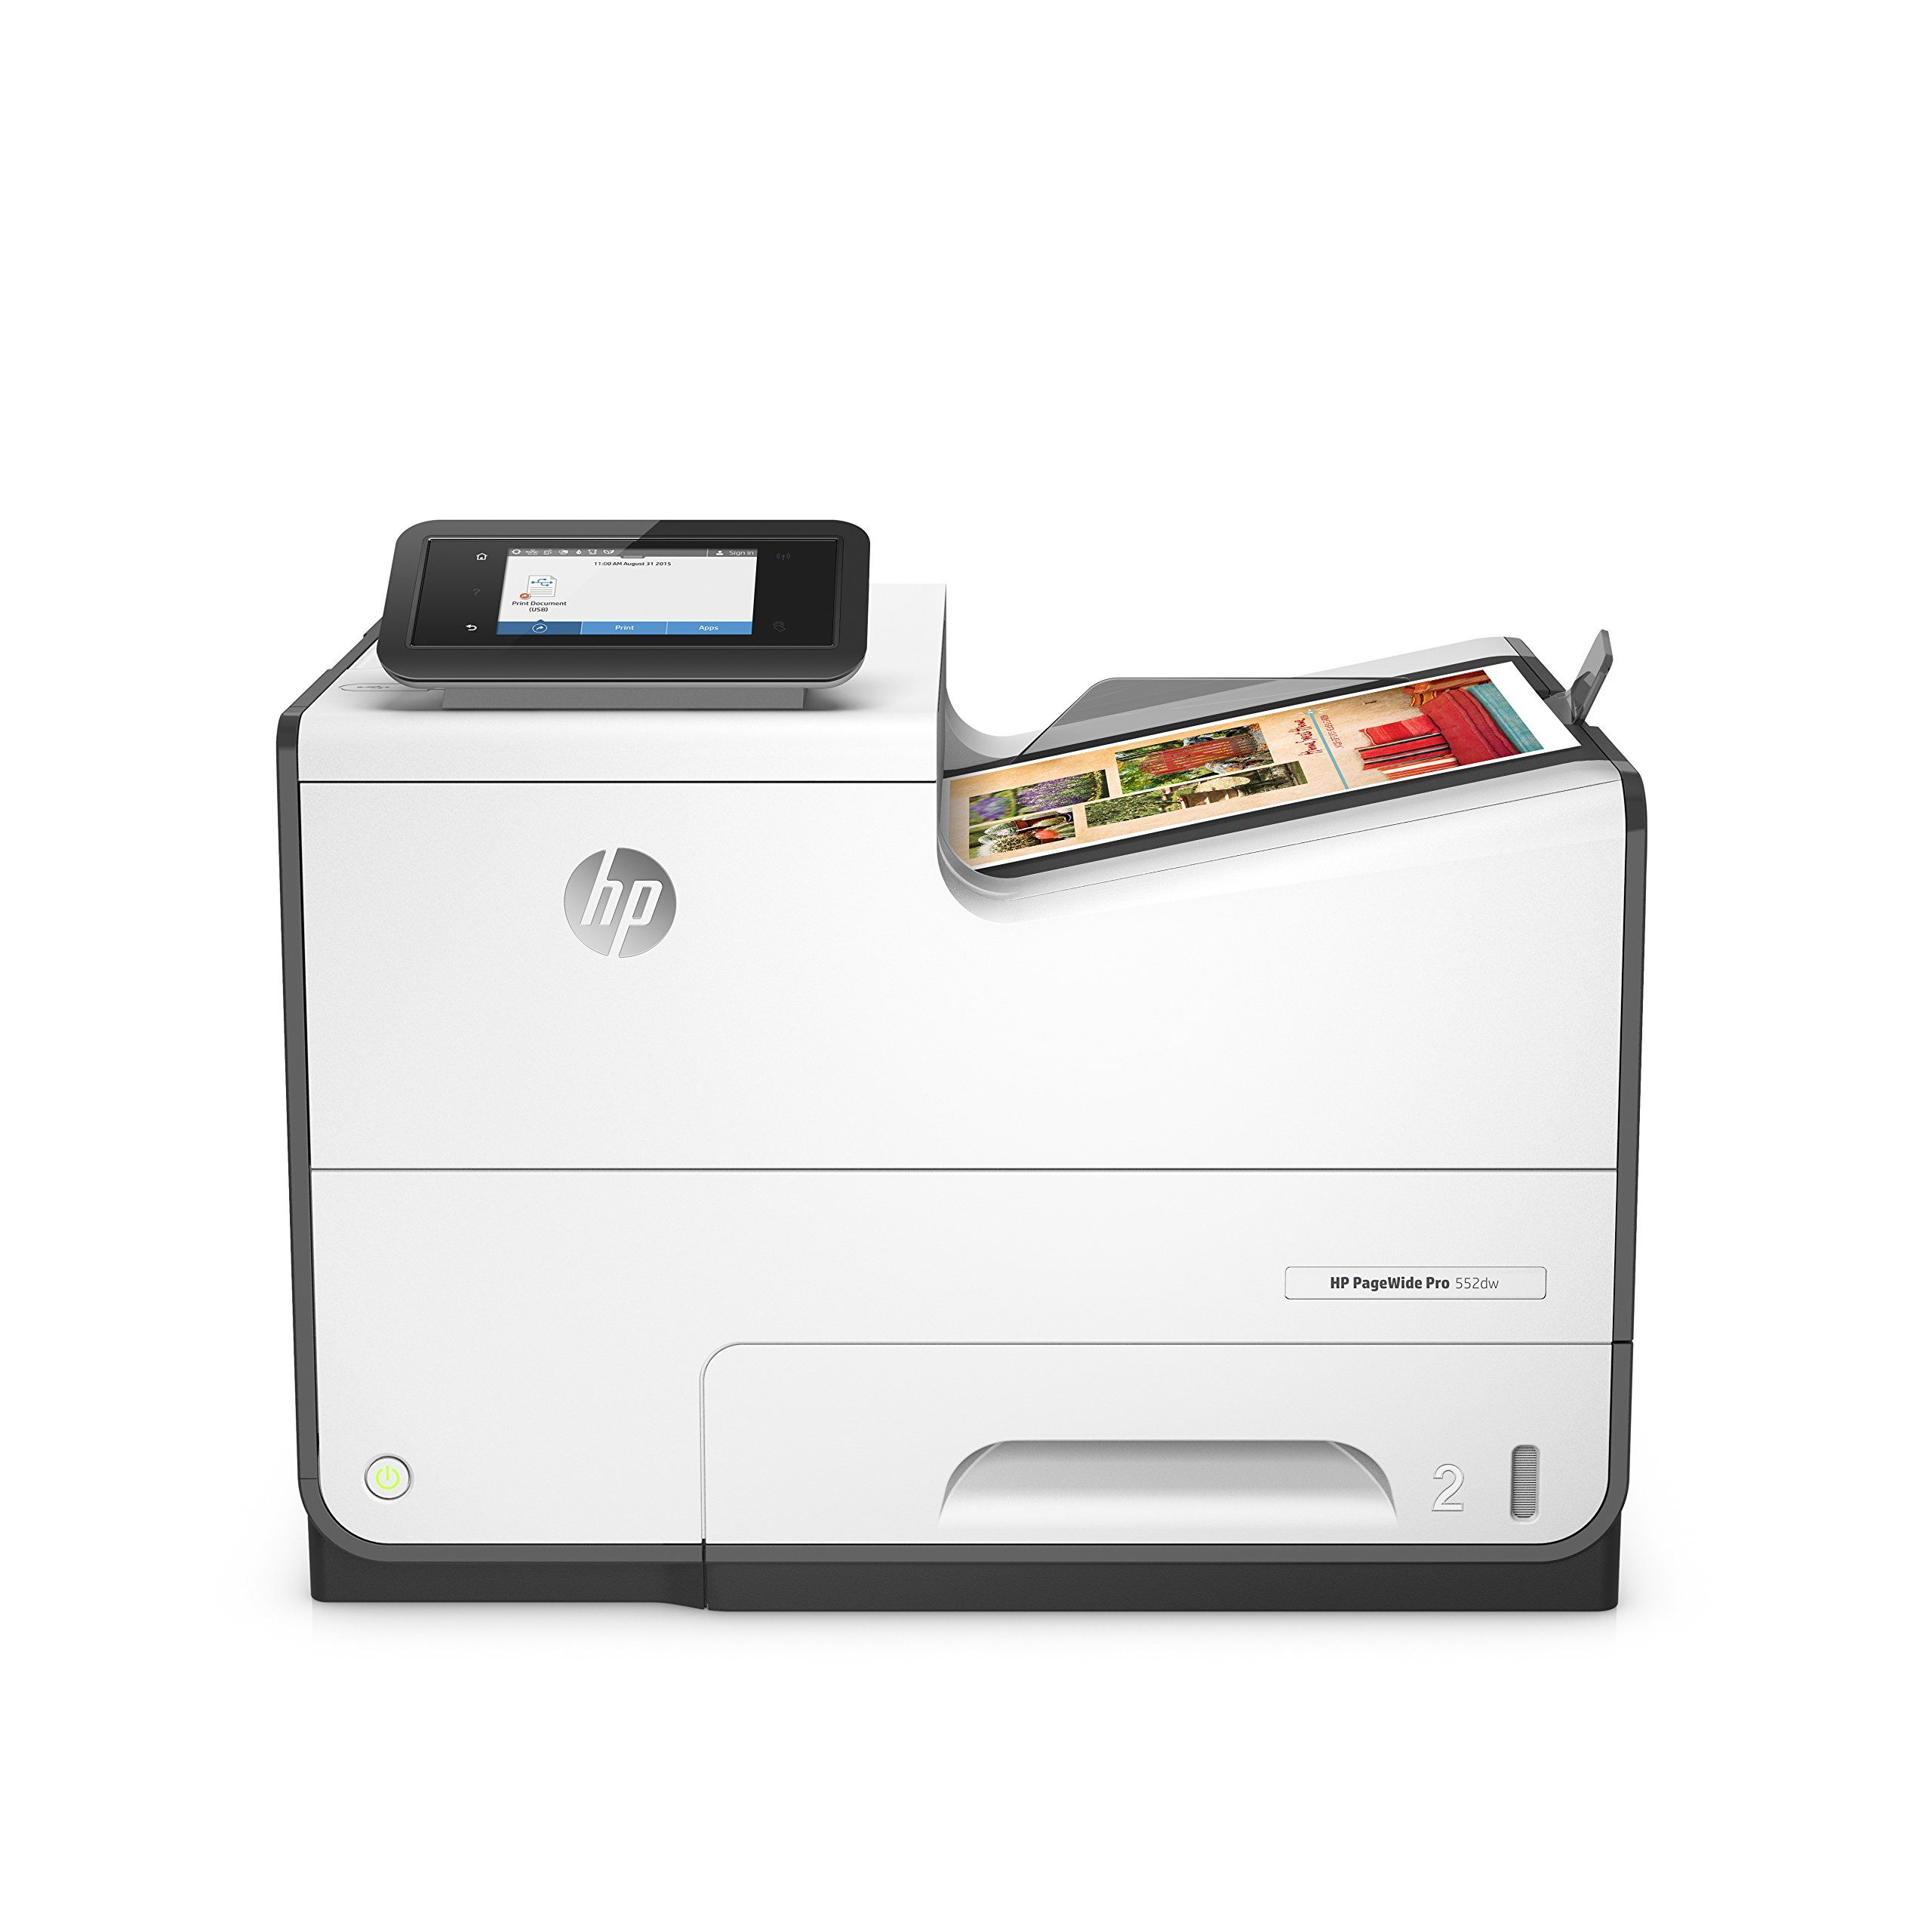 Color printer wireless - Hp Pagewide Pro 552dw Color Printer Double Sided Printer Wireless Printer